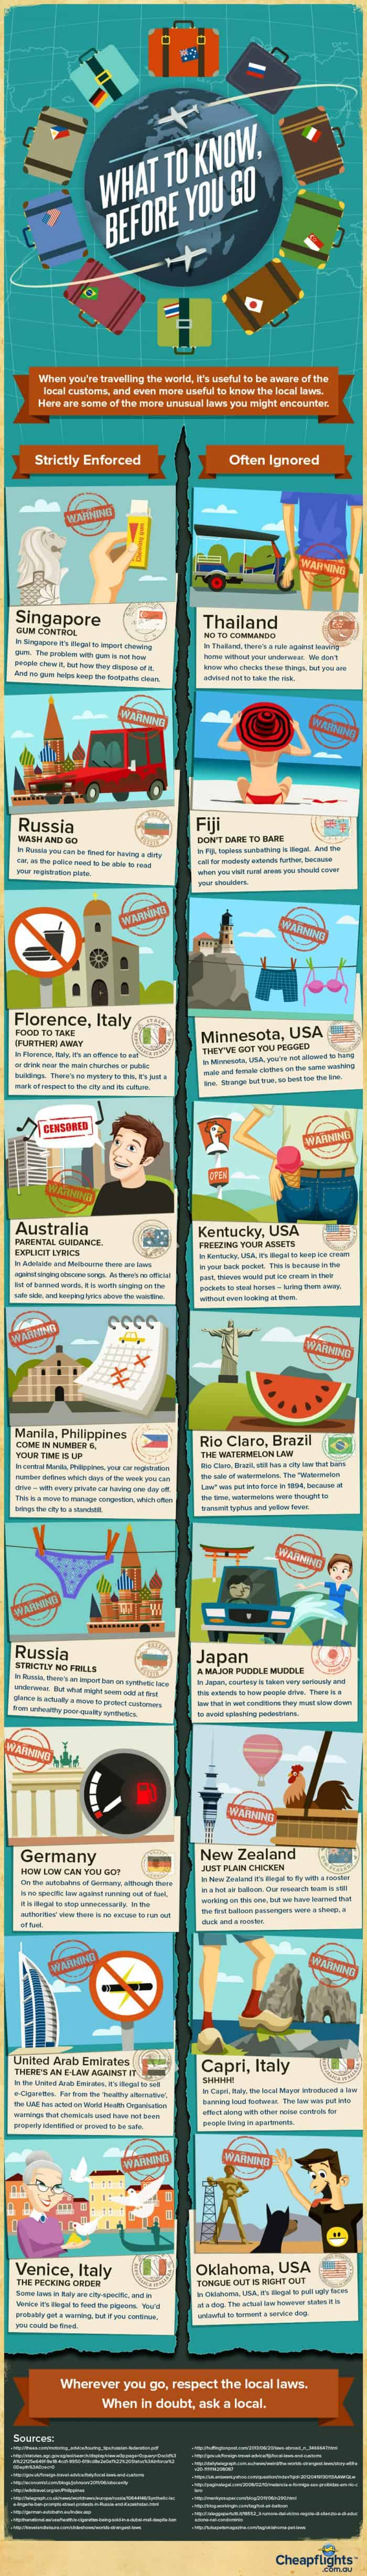 Strange Laws Around The World Infographic